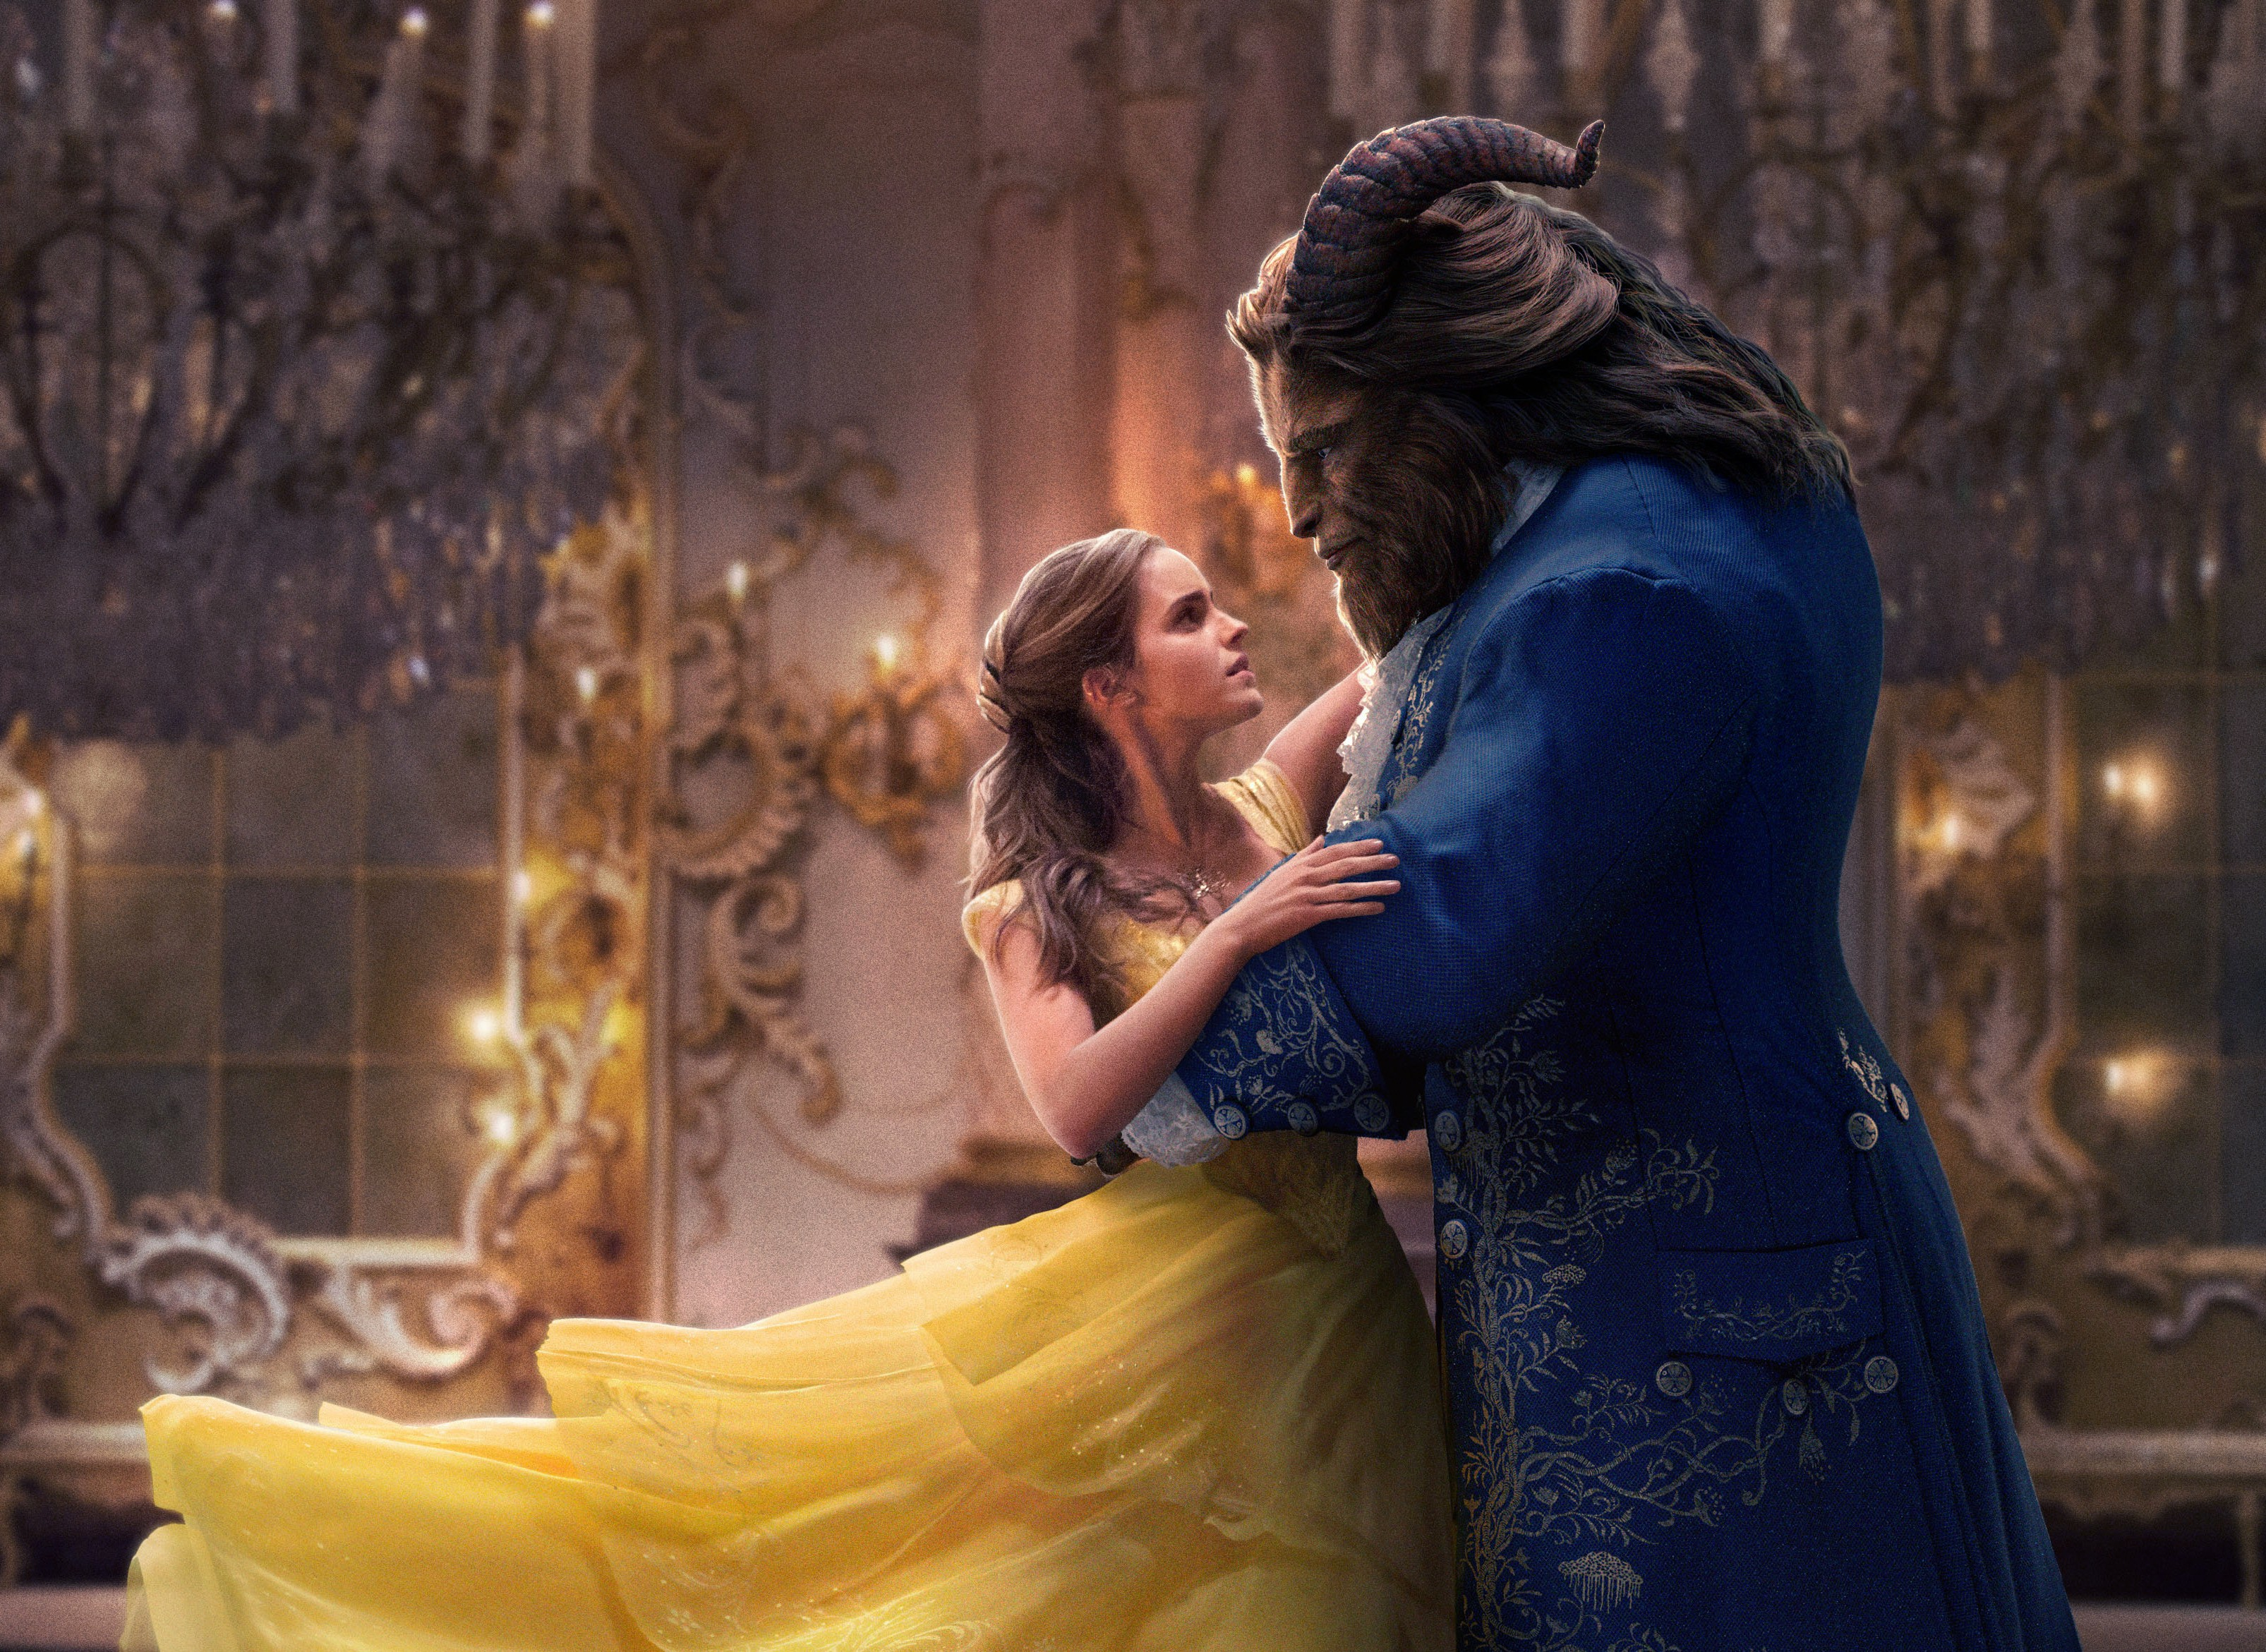 Beauty And The Beast (2017) Pics, Movie Collection